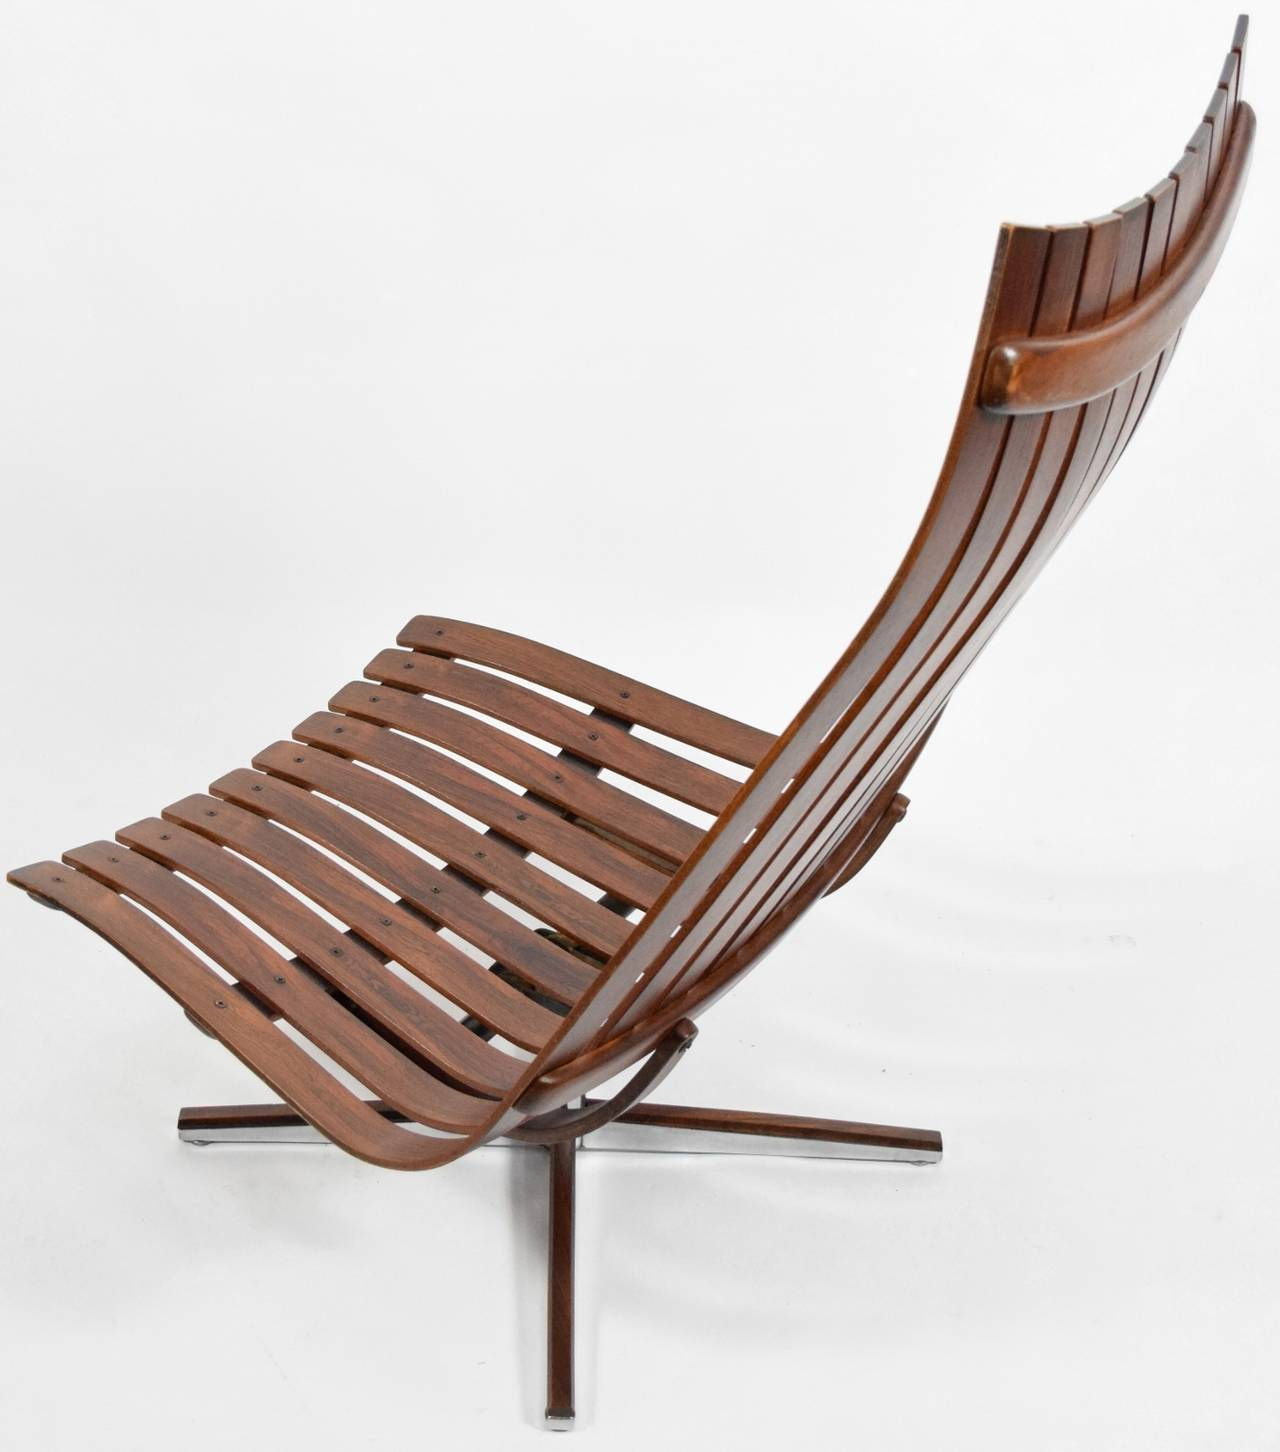 Hans brattrud scandia swivel lounge chair for hove for Furniture hove